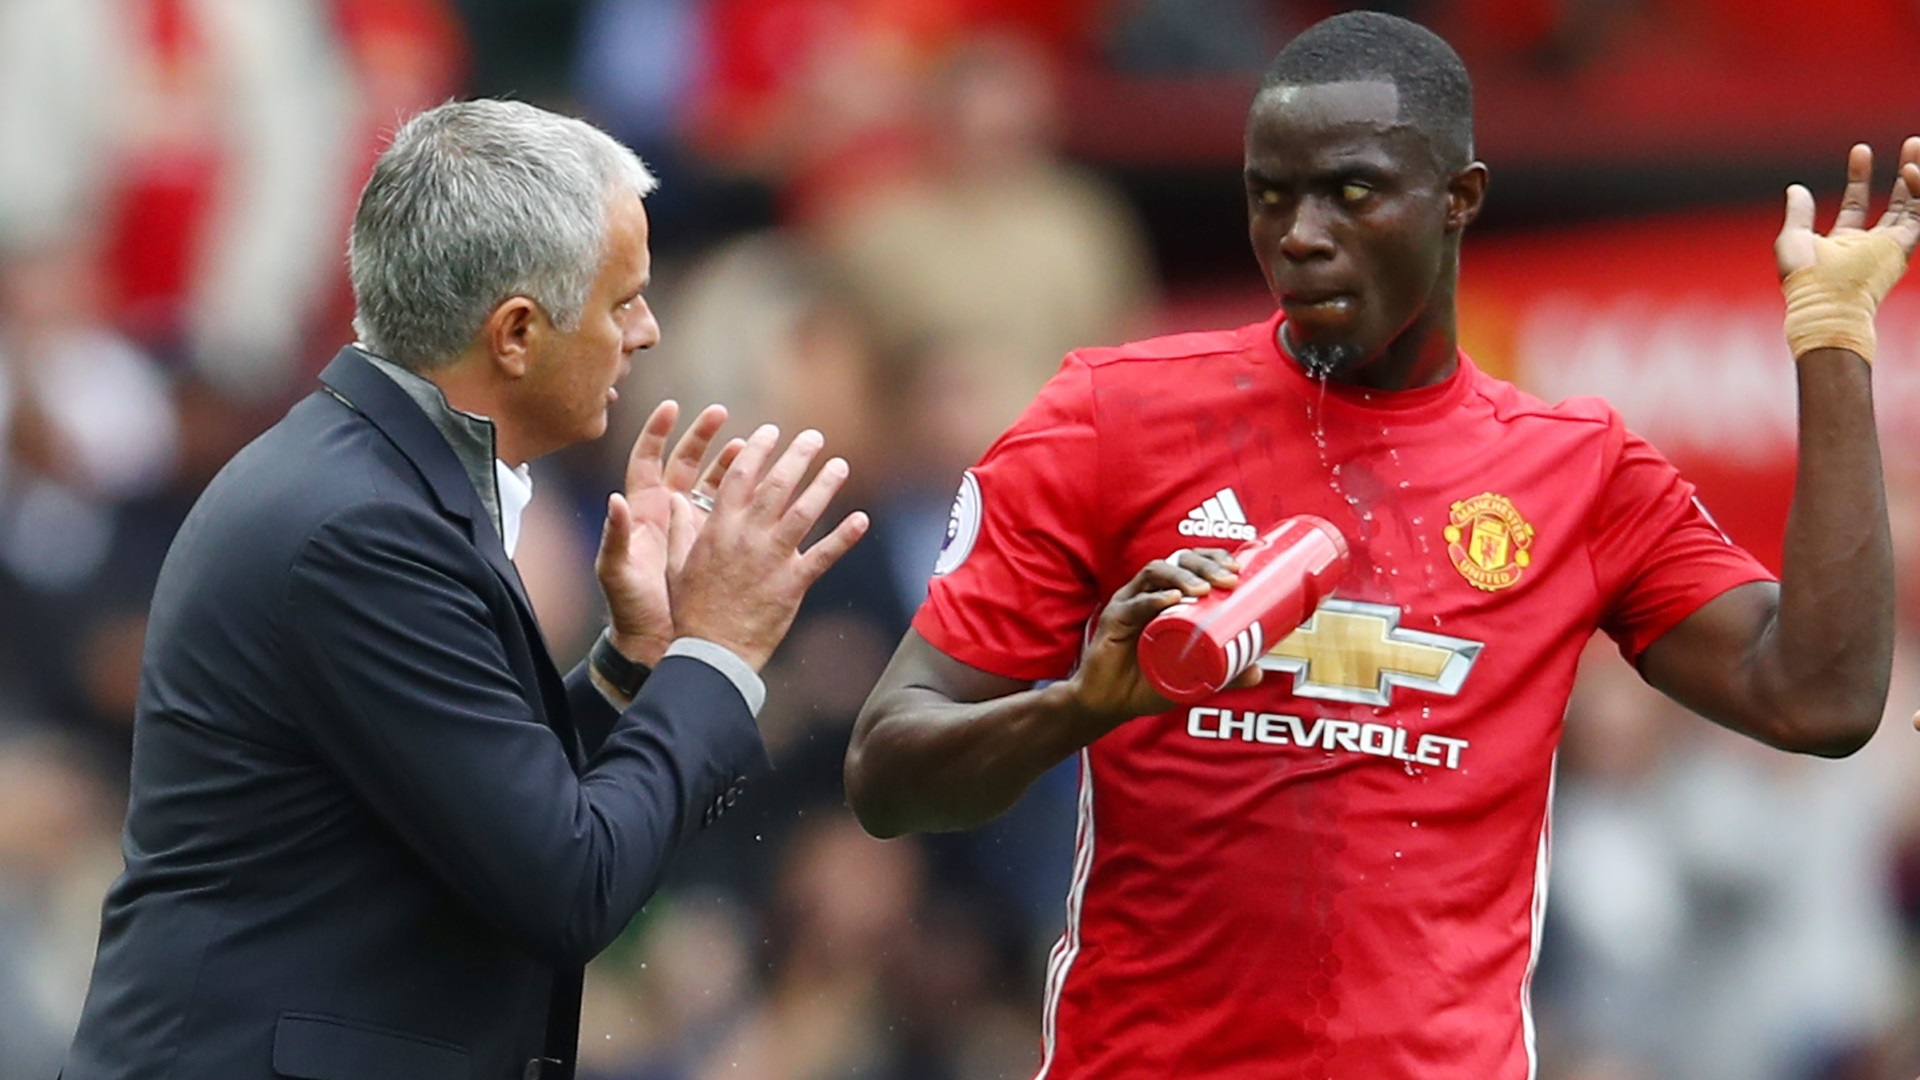 Jose Mourinho and Eric Bailly of Manchester United